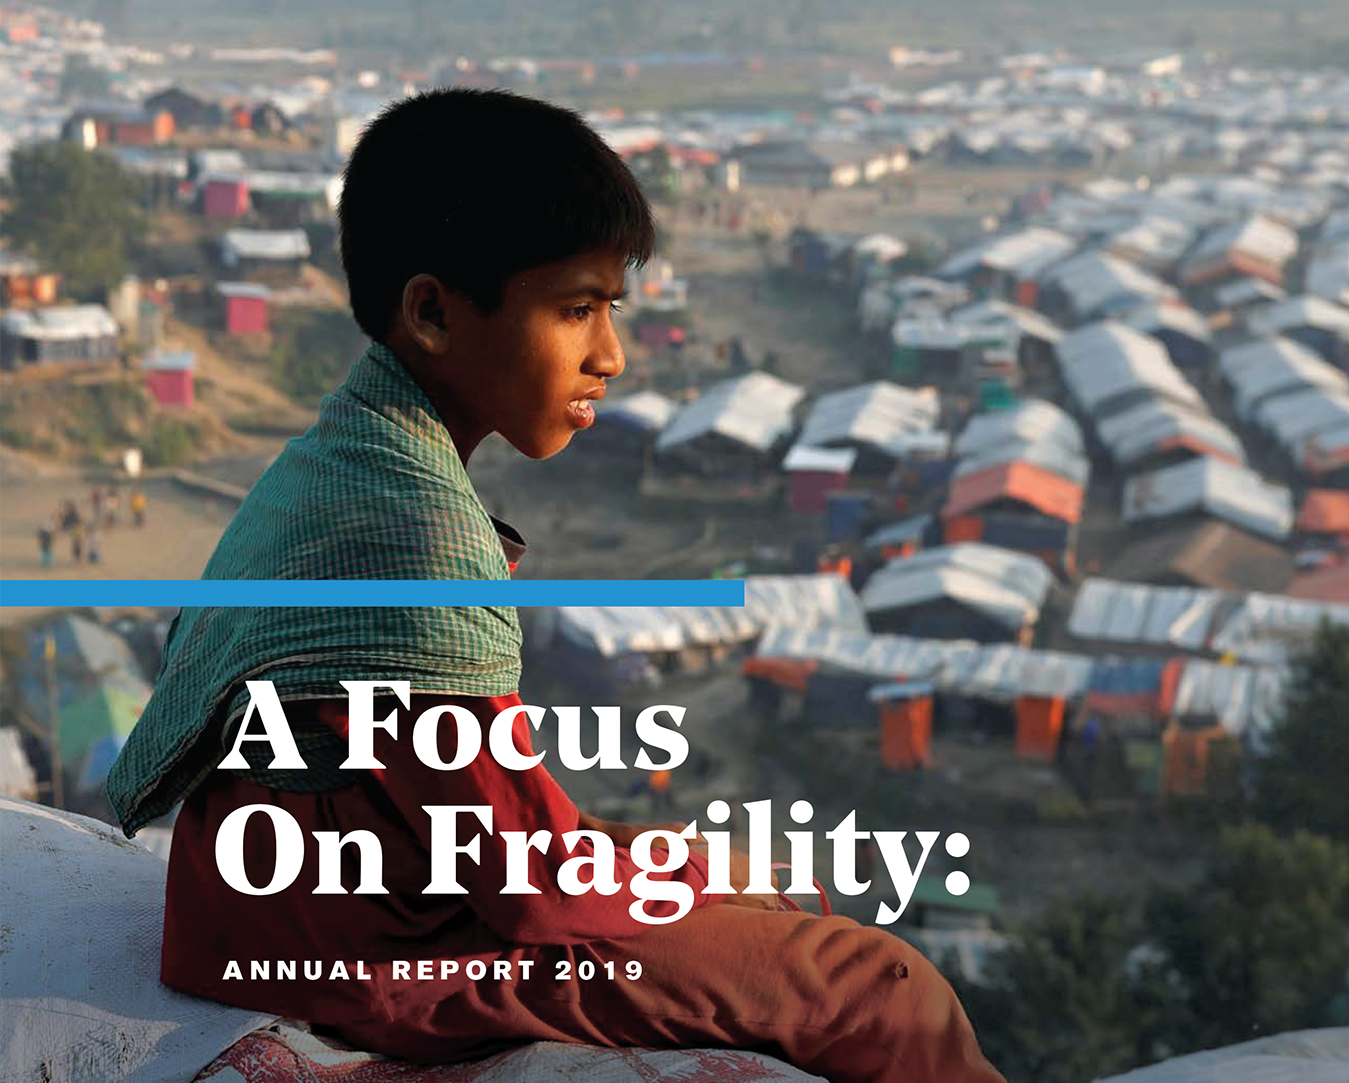 relief-international-annual-report-2019-cover-e1602607324810.png